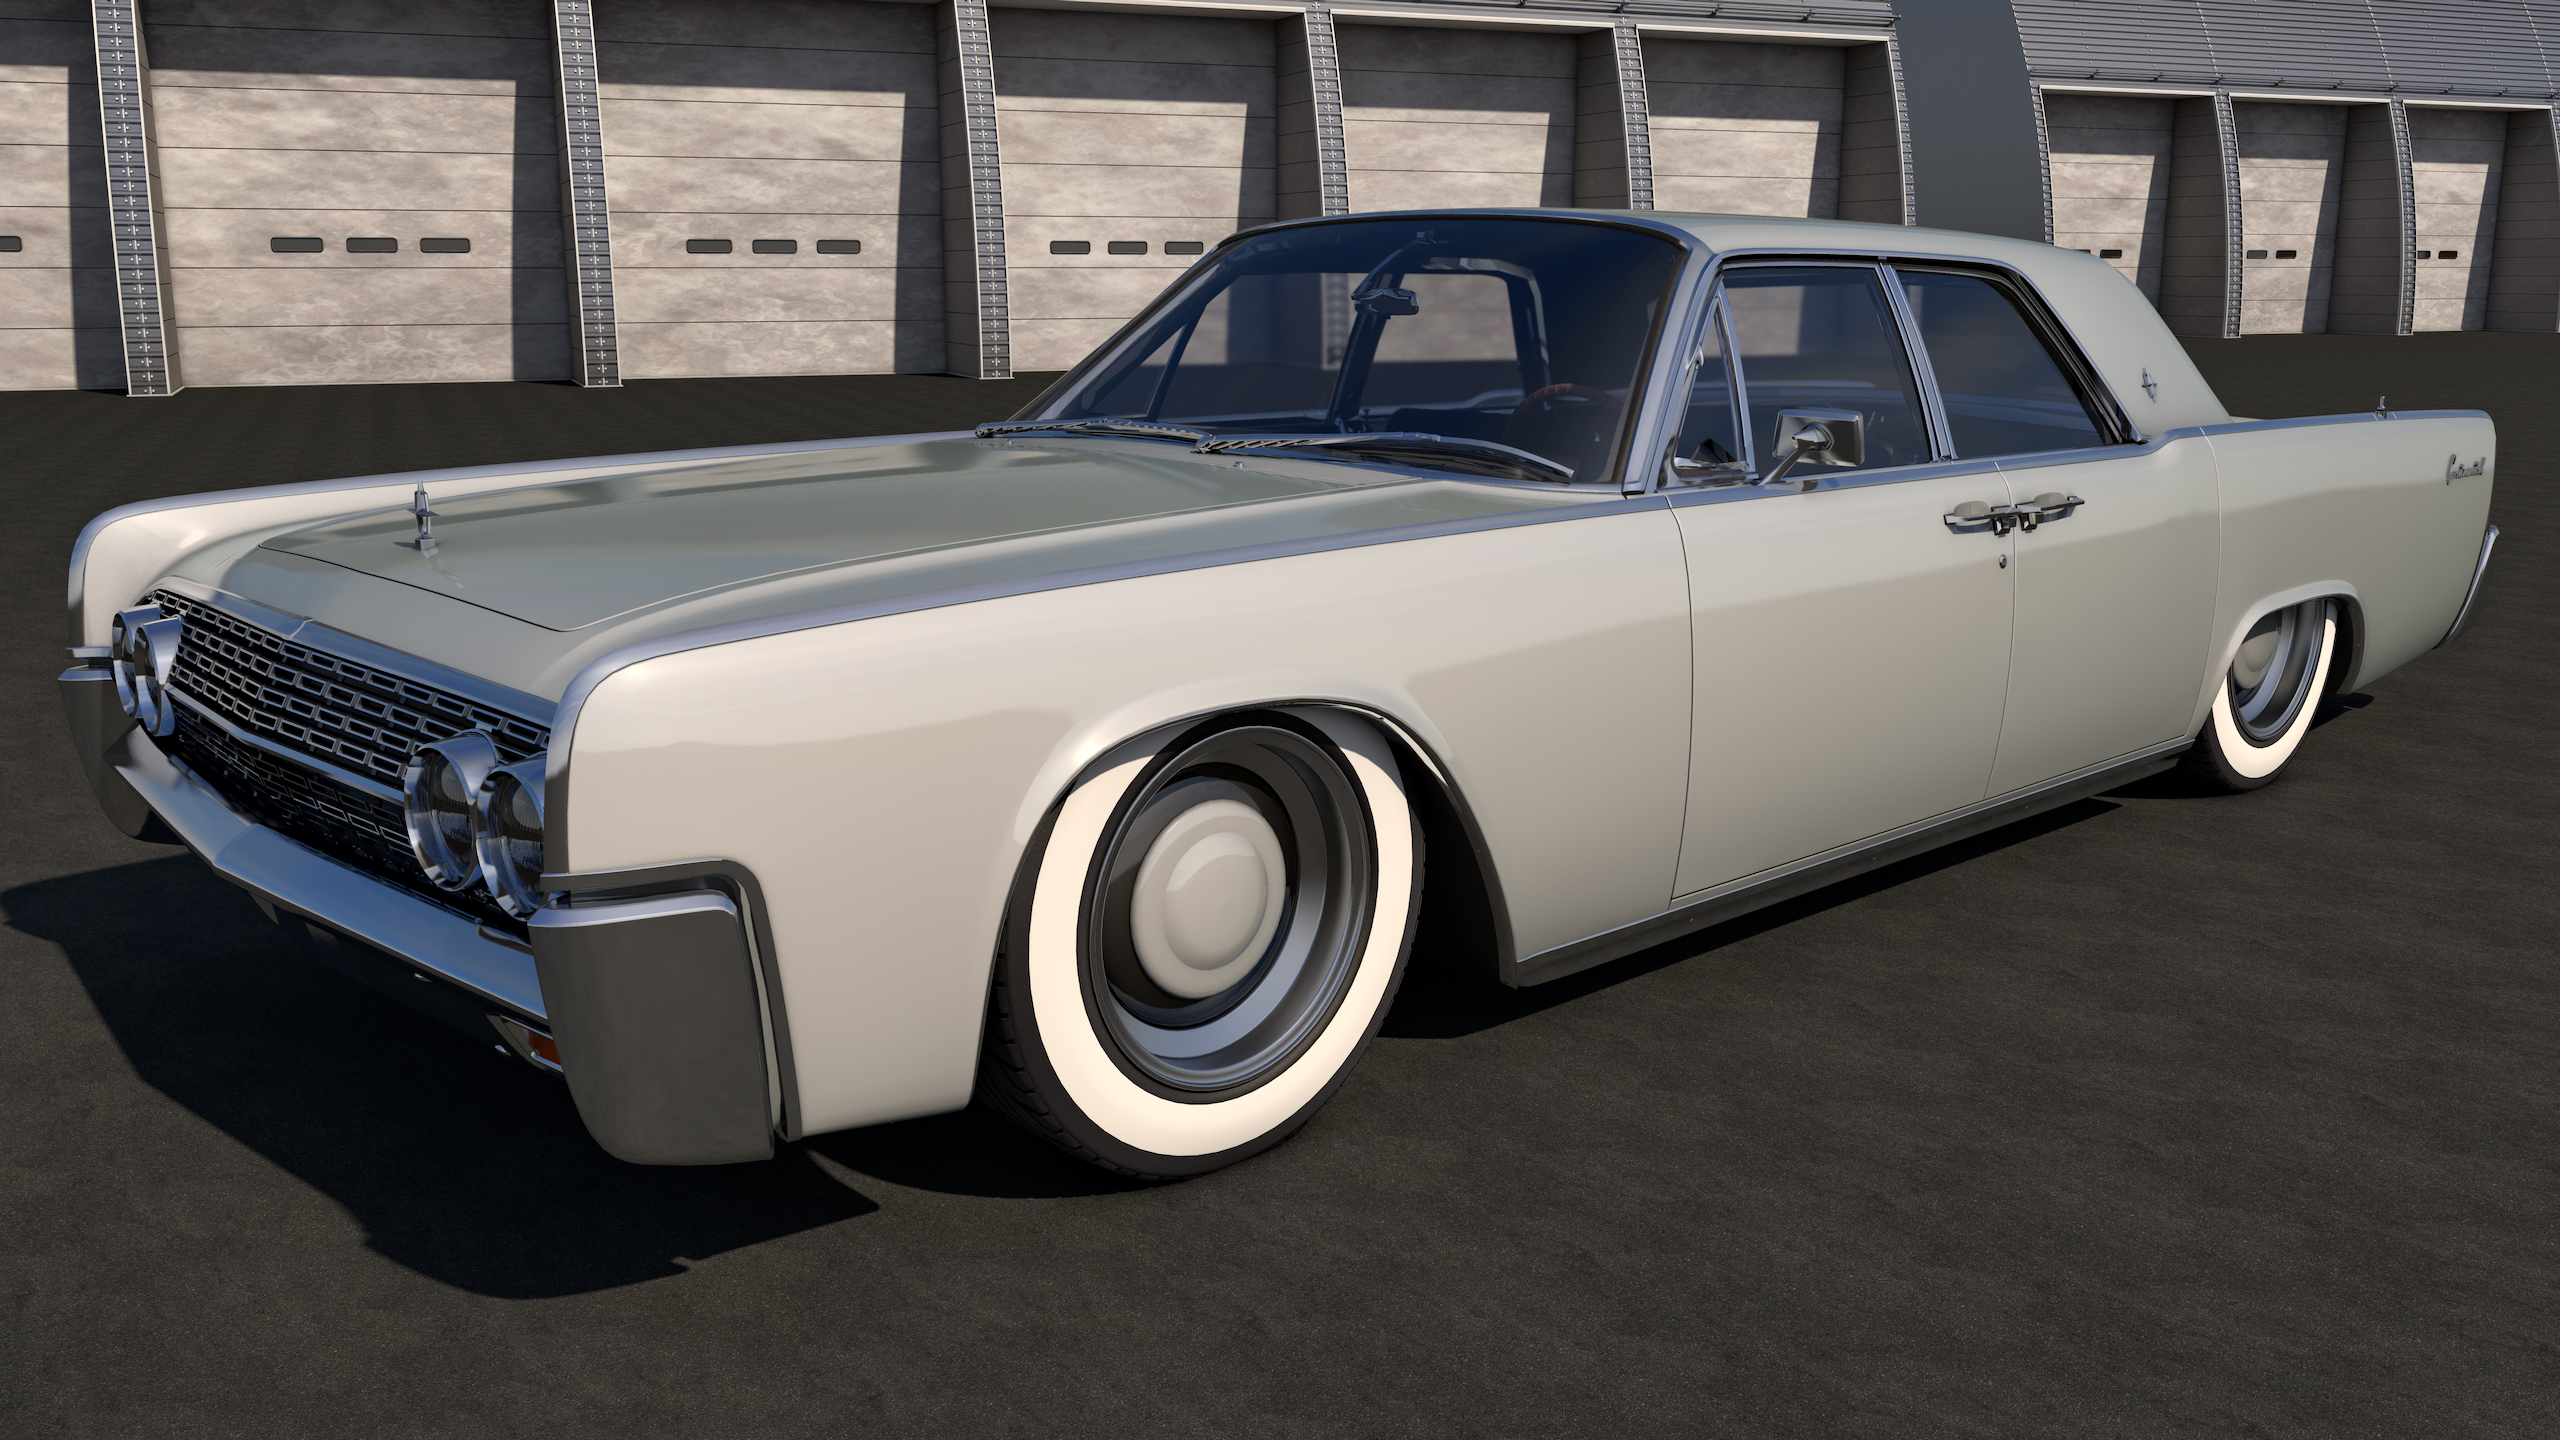 1962 Lincoln Continental By Samcurry On Deviantart